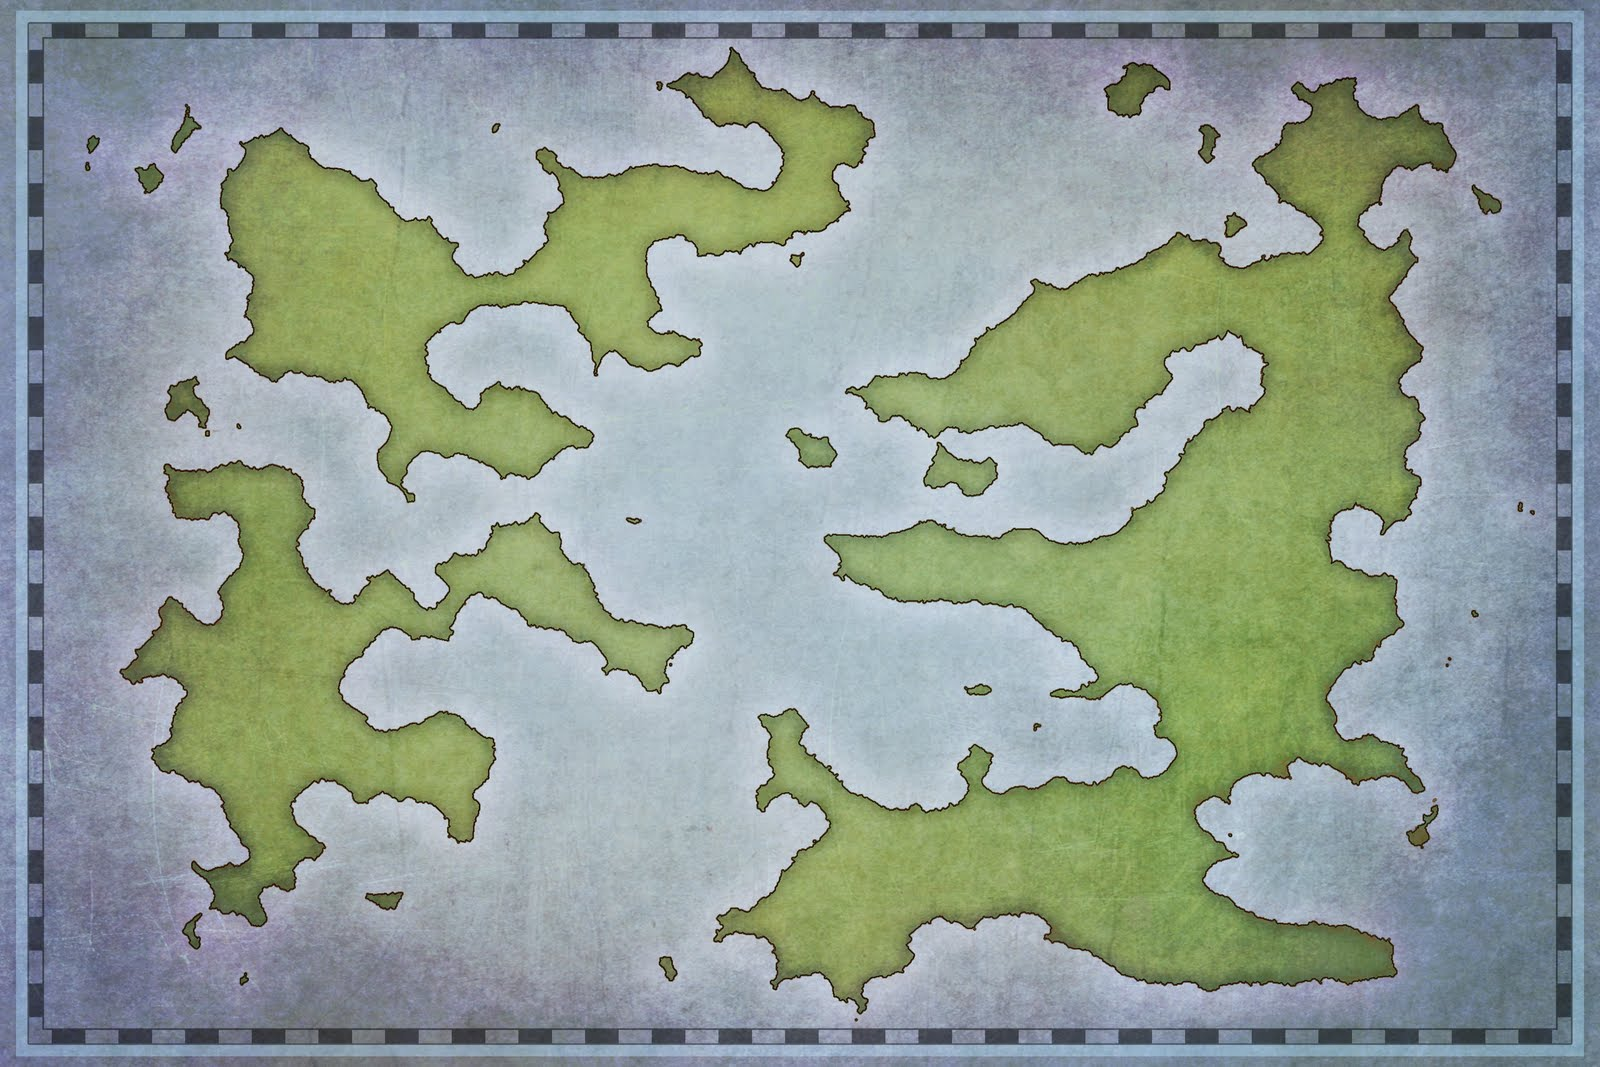 Monday maps free world map the labyrinth i havent started working on next weeks map yet so if you would like to see a certain kind of map island continent world regional etc now is the time gumiabroncs Choice Image